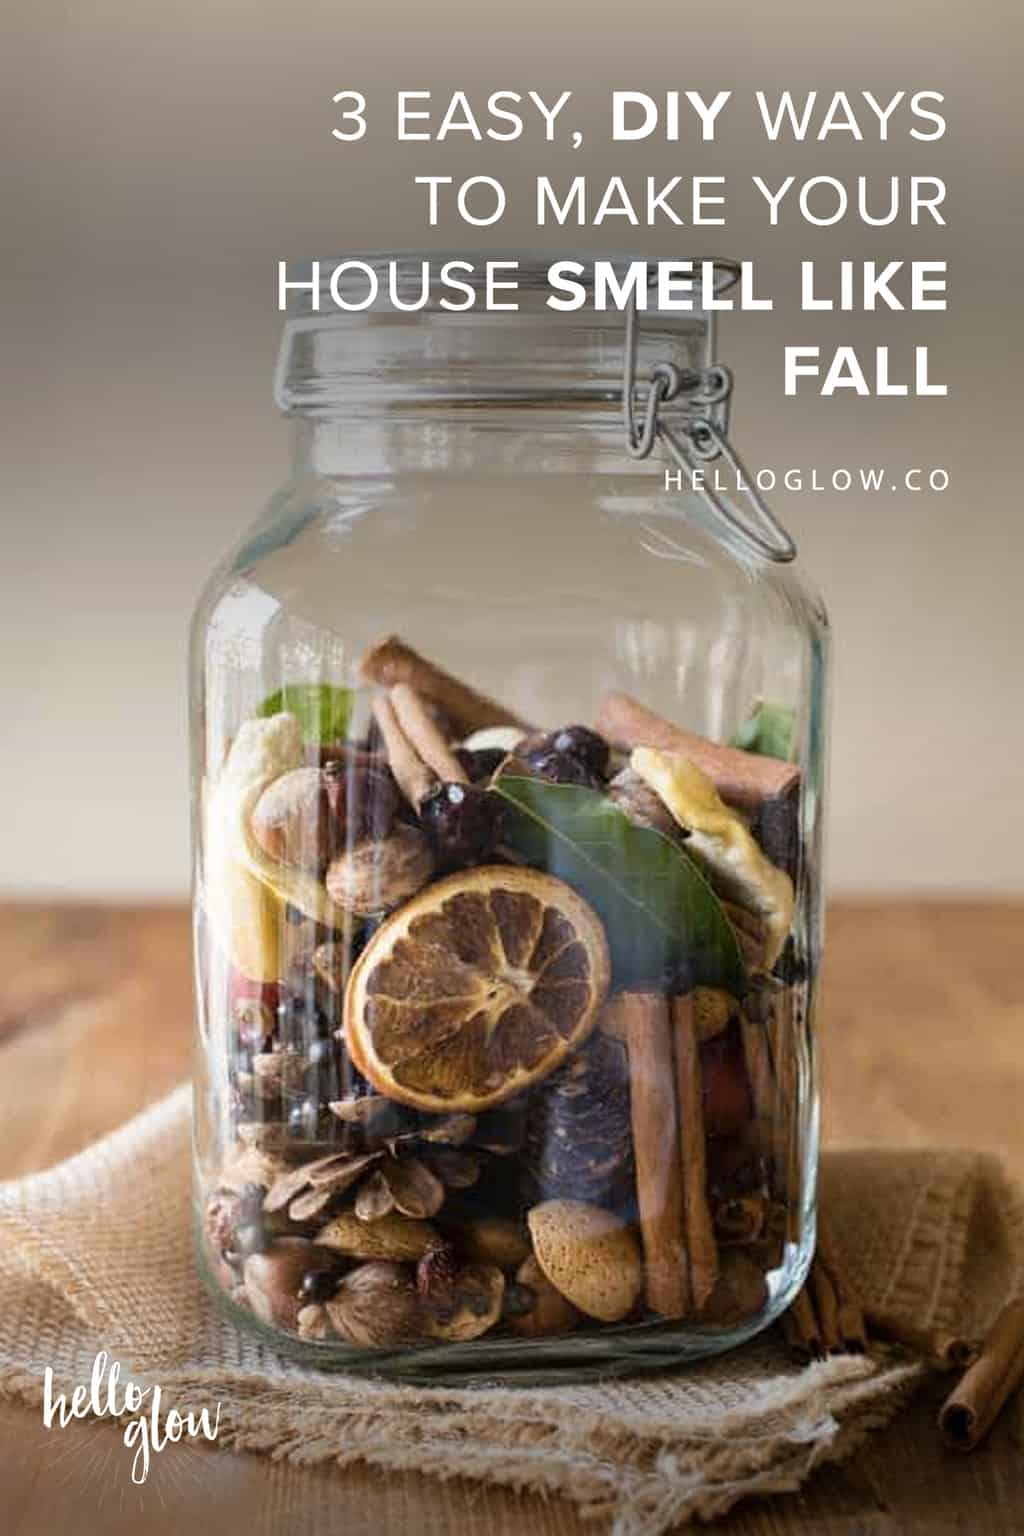 3 Easy Diy Ways To Make Your House Smell Like Fall Hello Glow